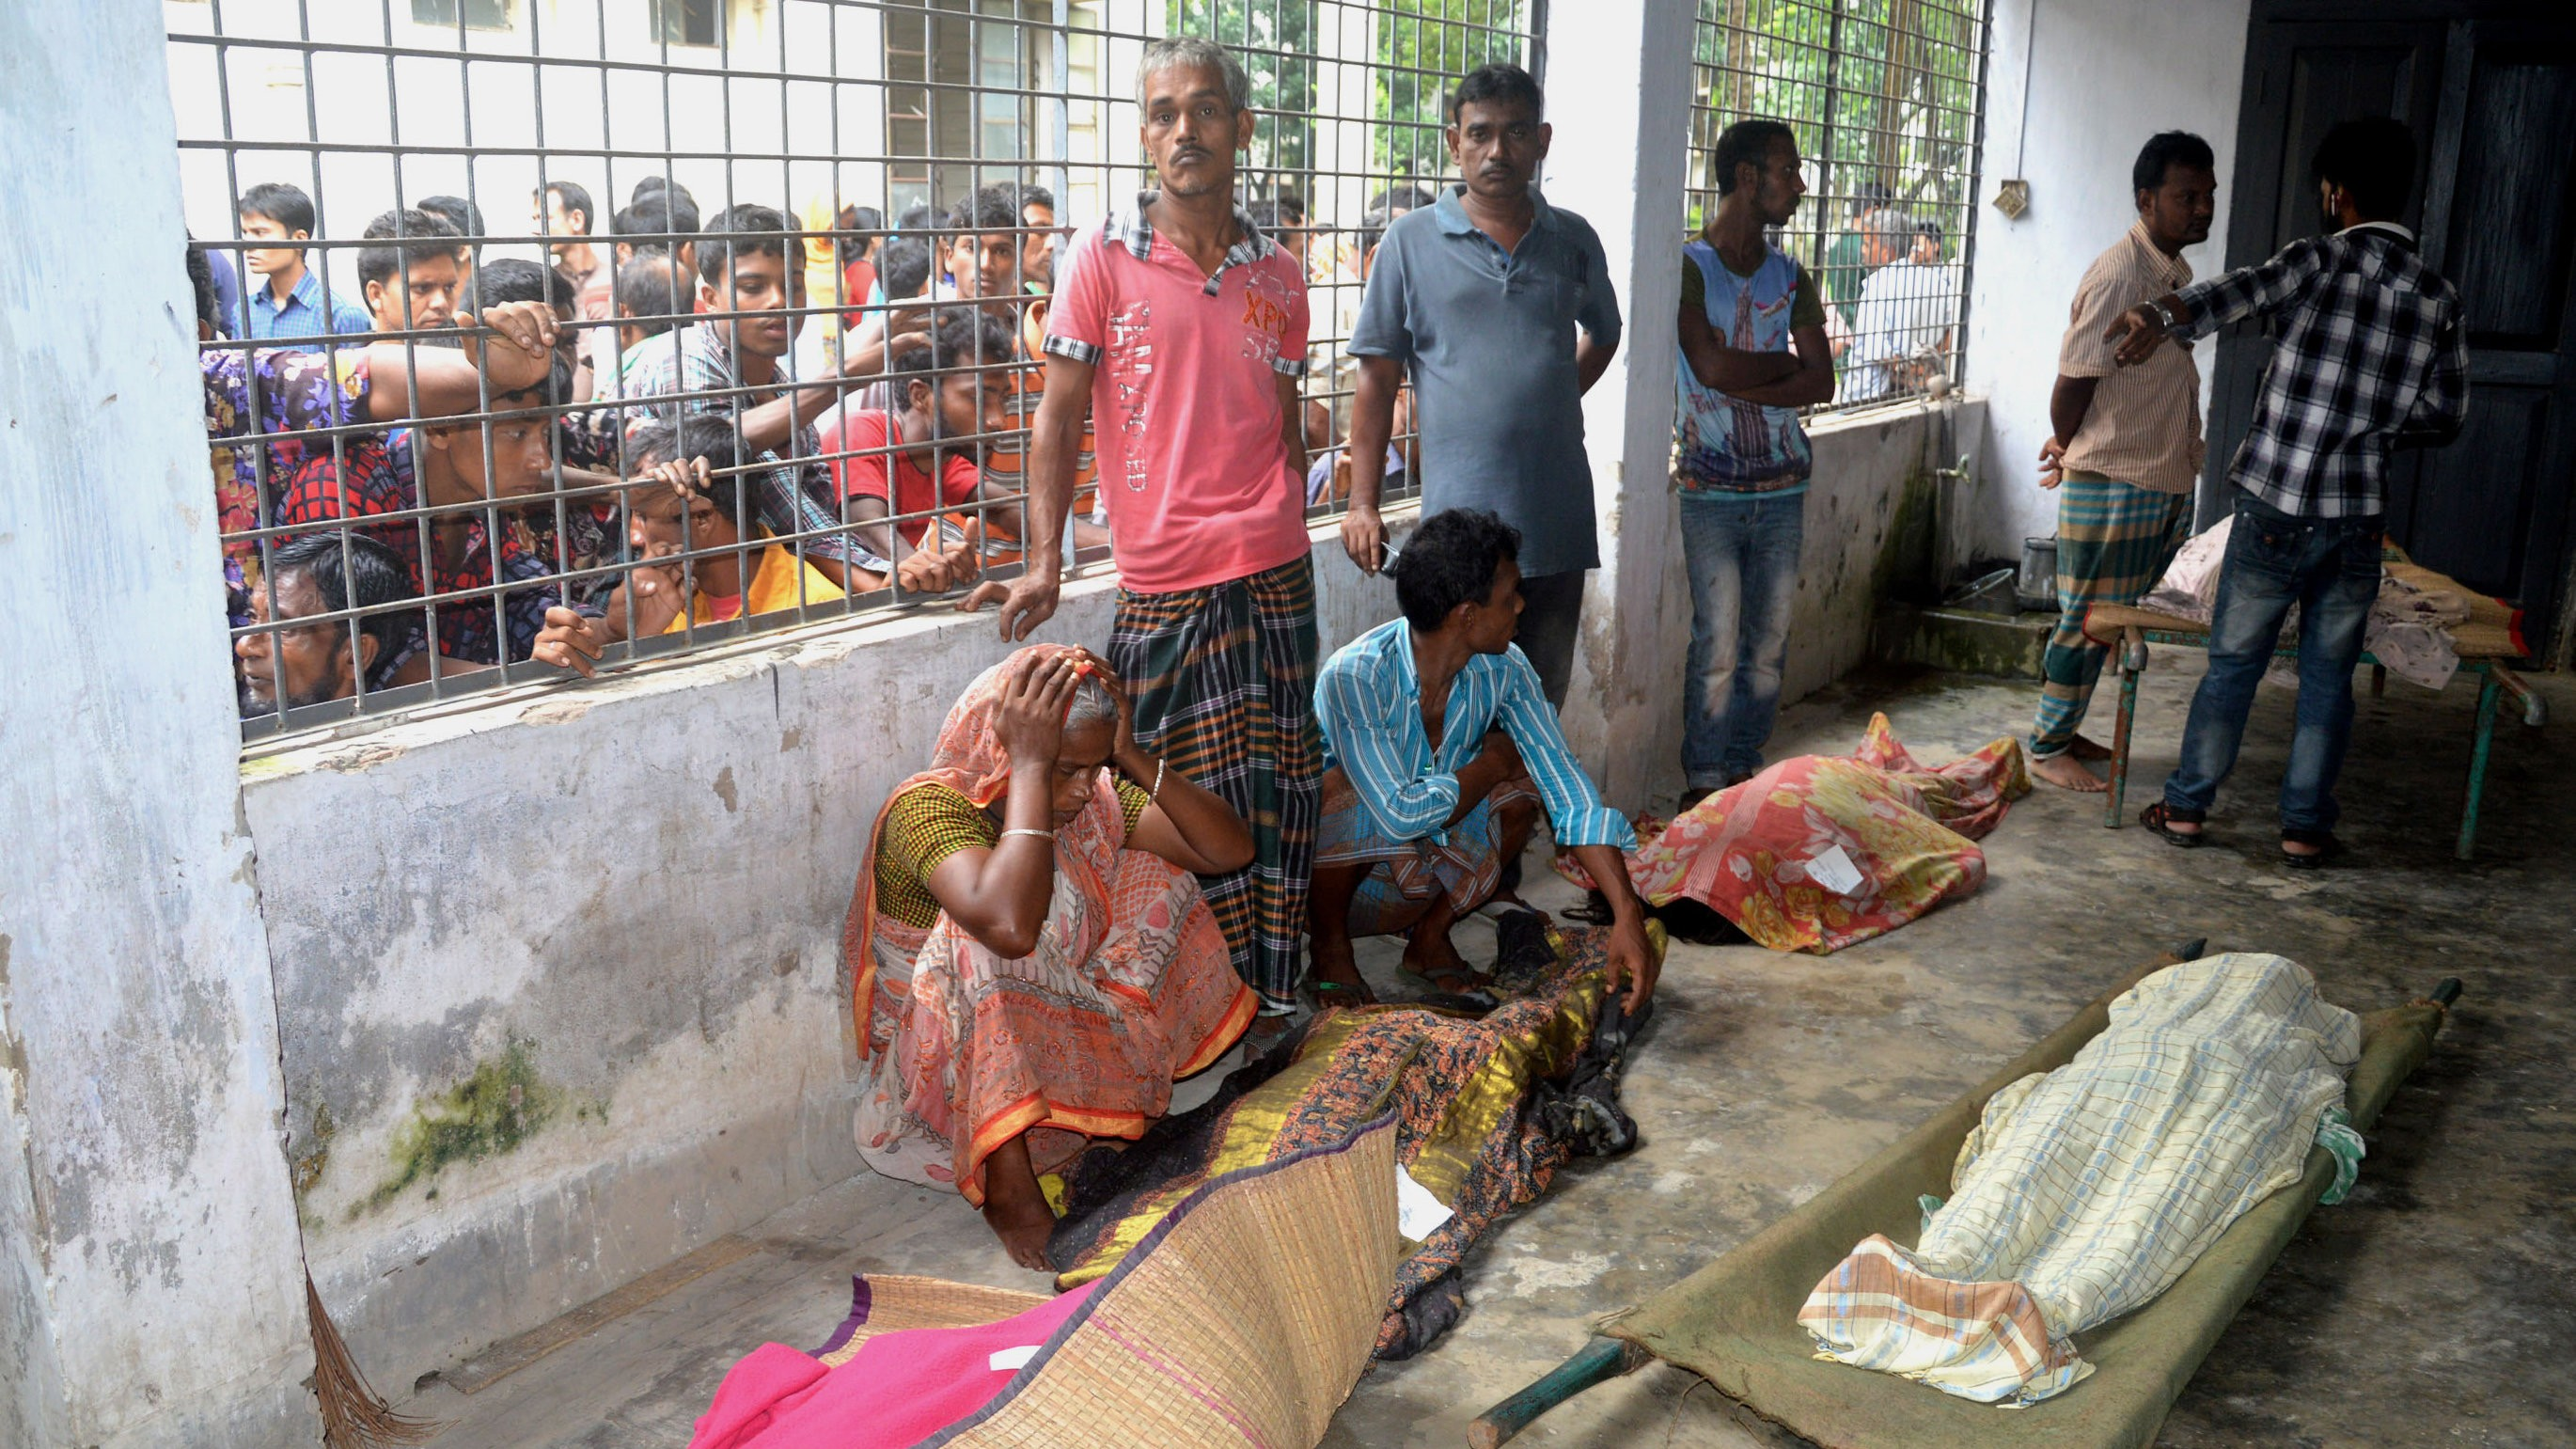 At Least 23 Die in Stampede at Clothes Giveaway in Bangladesh